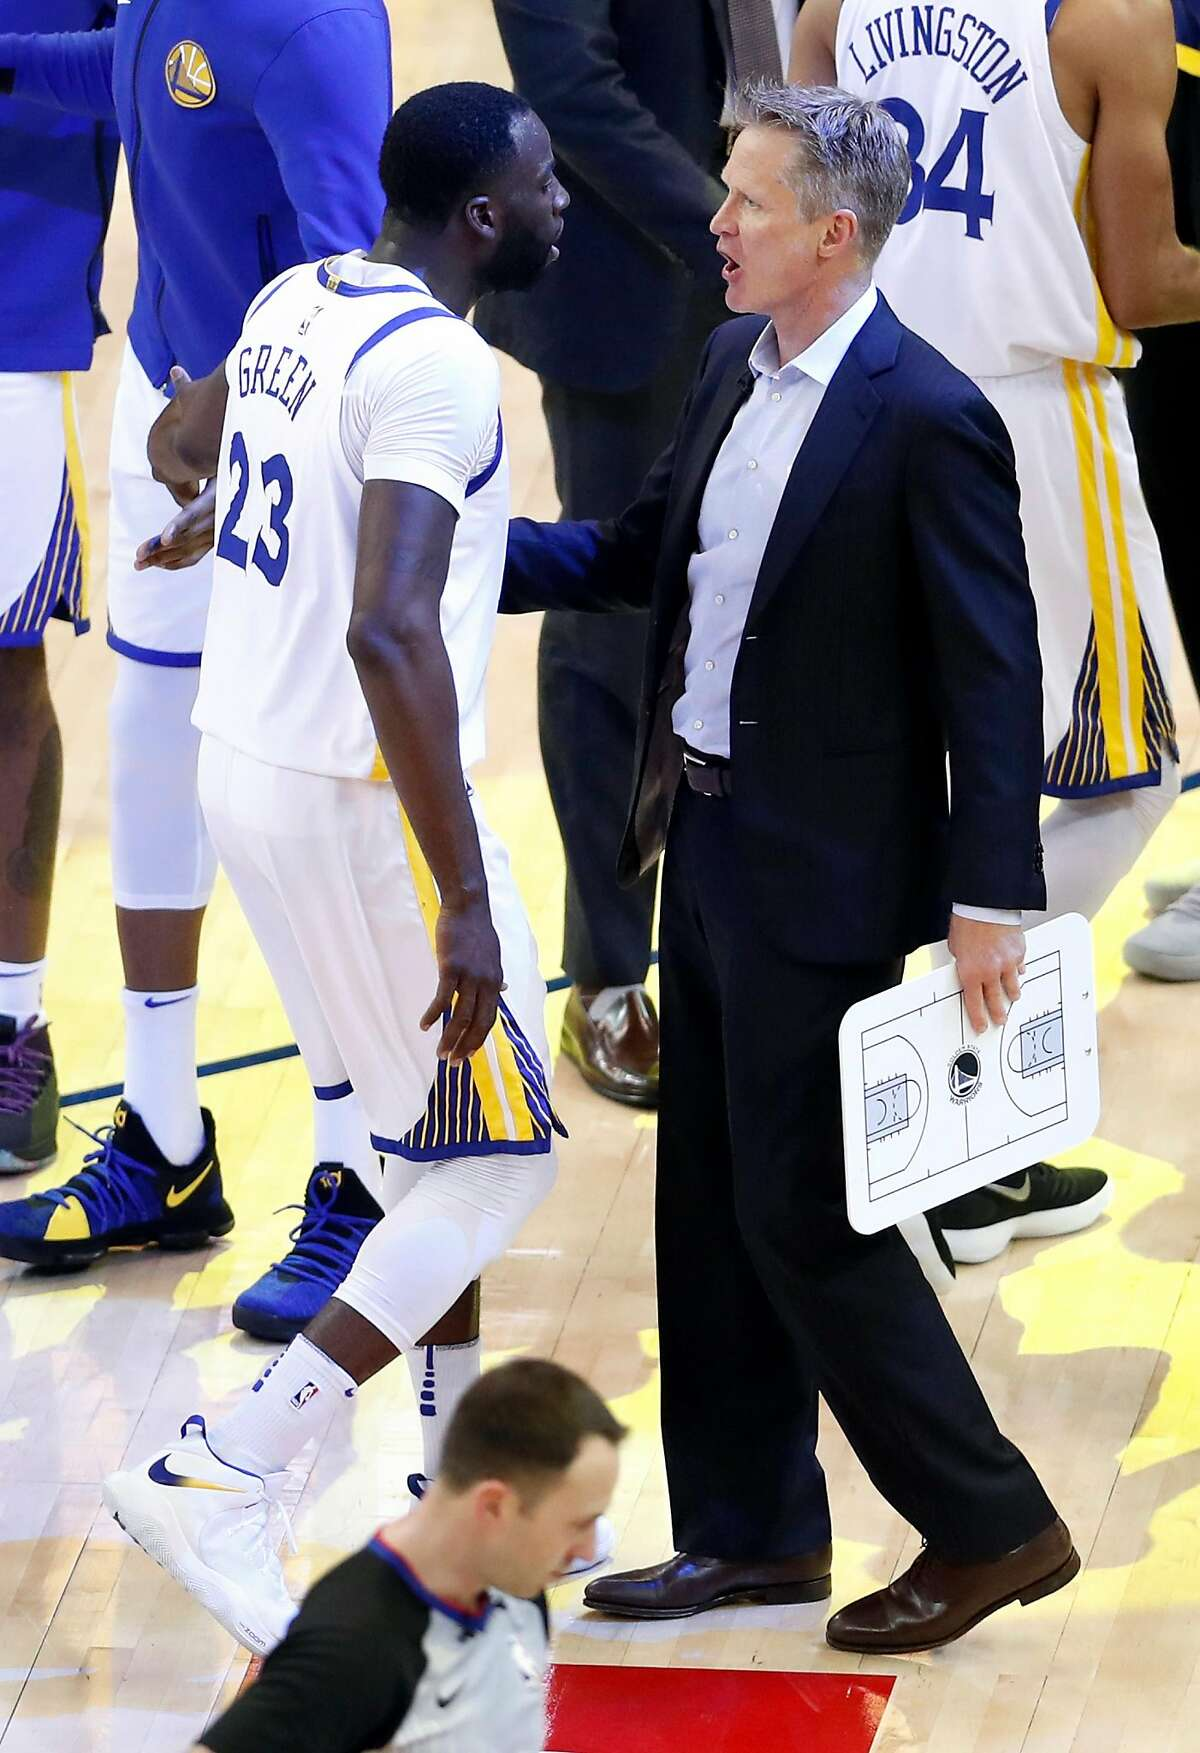 Golden State Warriors' head coach Steve Kerr and Draymond Green confer during a time out during 113-92 win over San Antonio Spurs in Game 1 of NBA Western Conference First Round playoff game at Oracle Arena in Oakland, Calif., on Saturday, April 14, 2018.